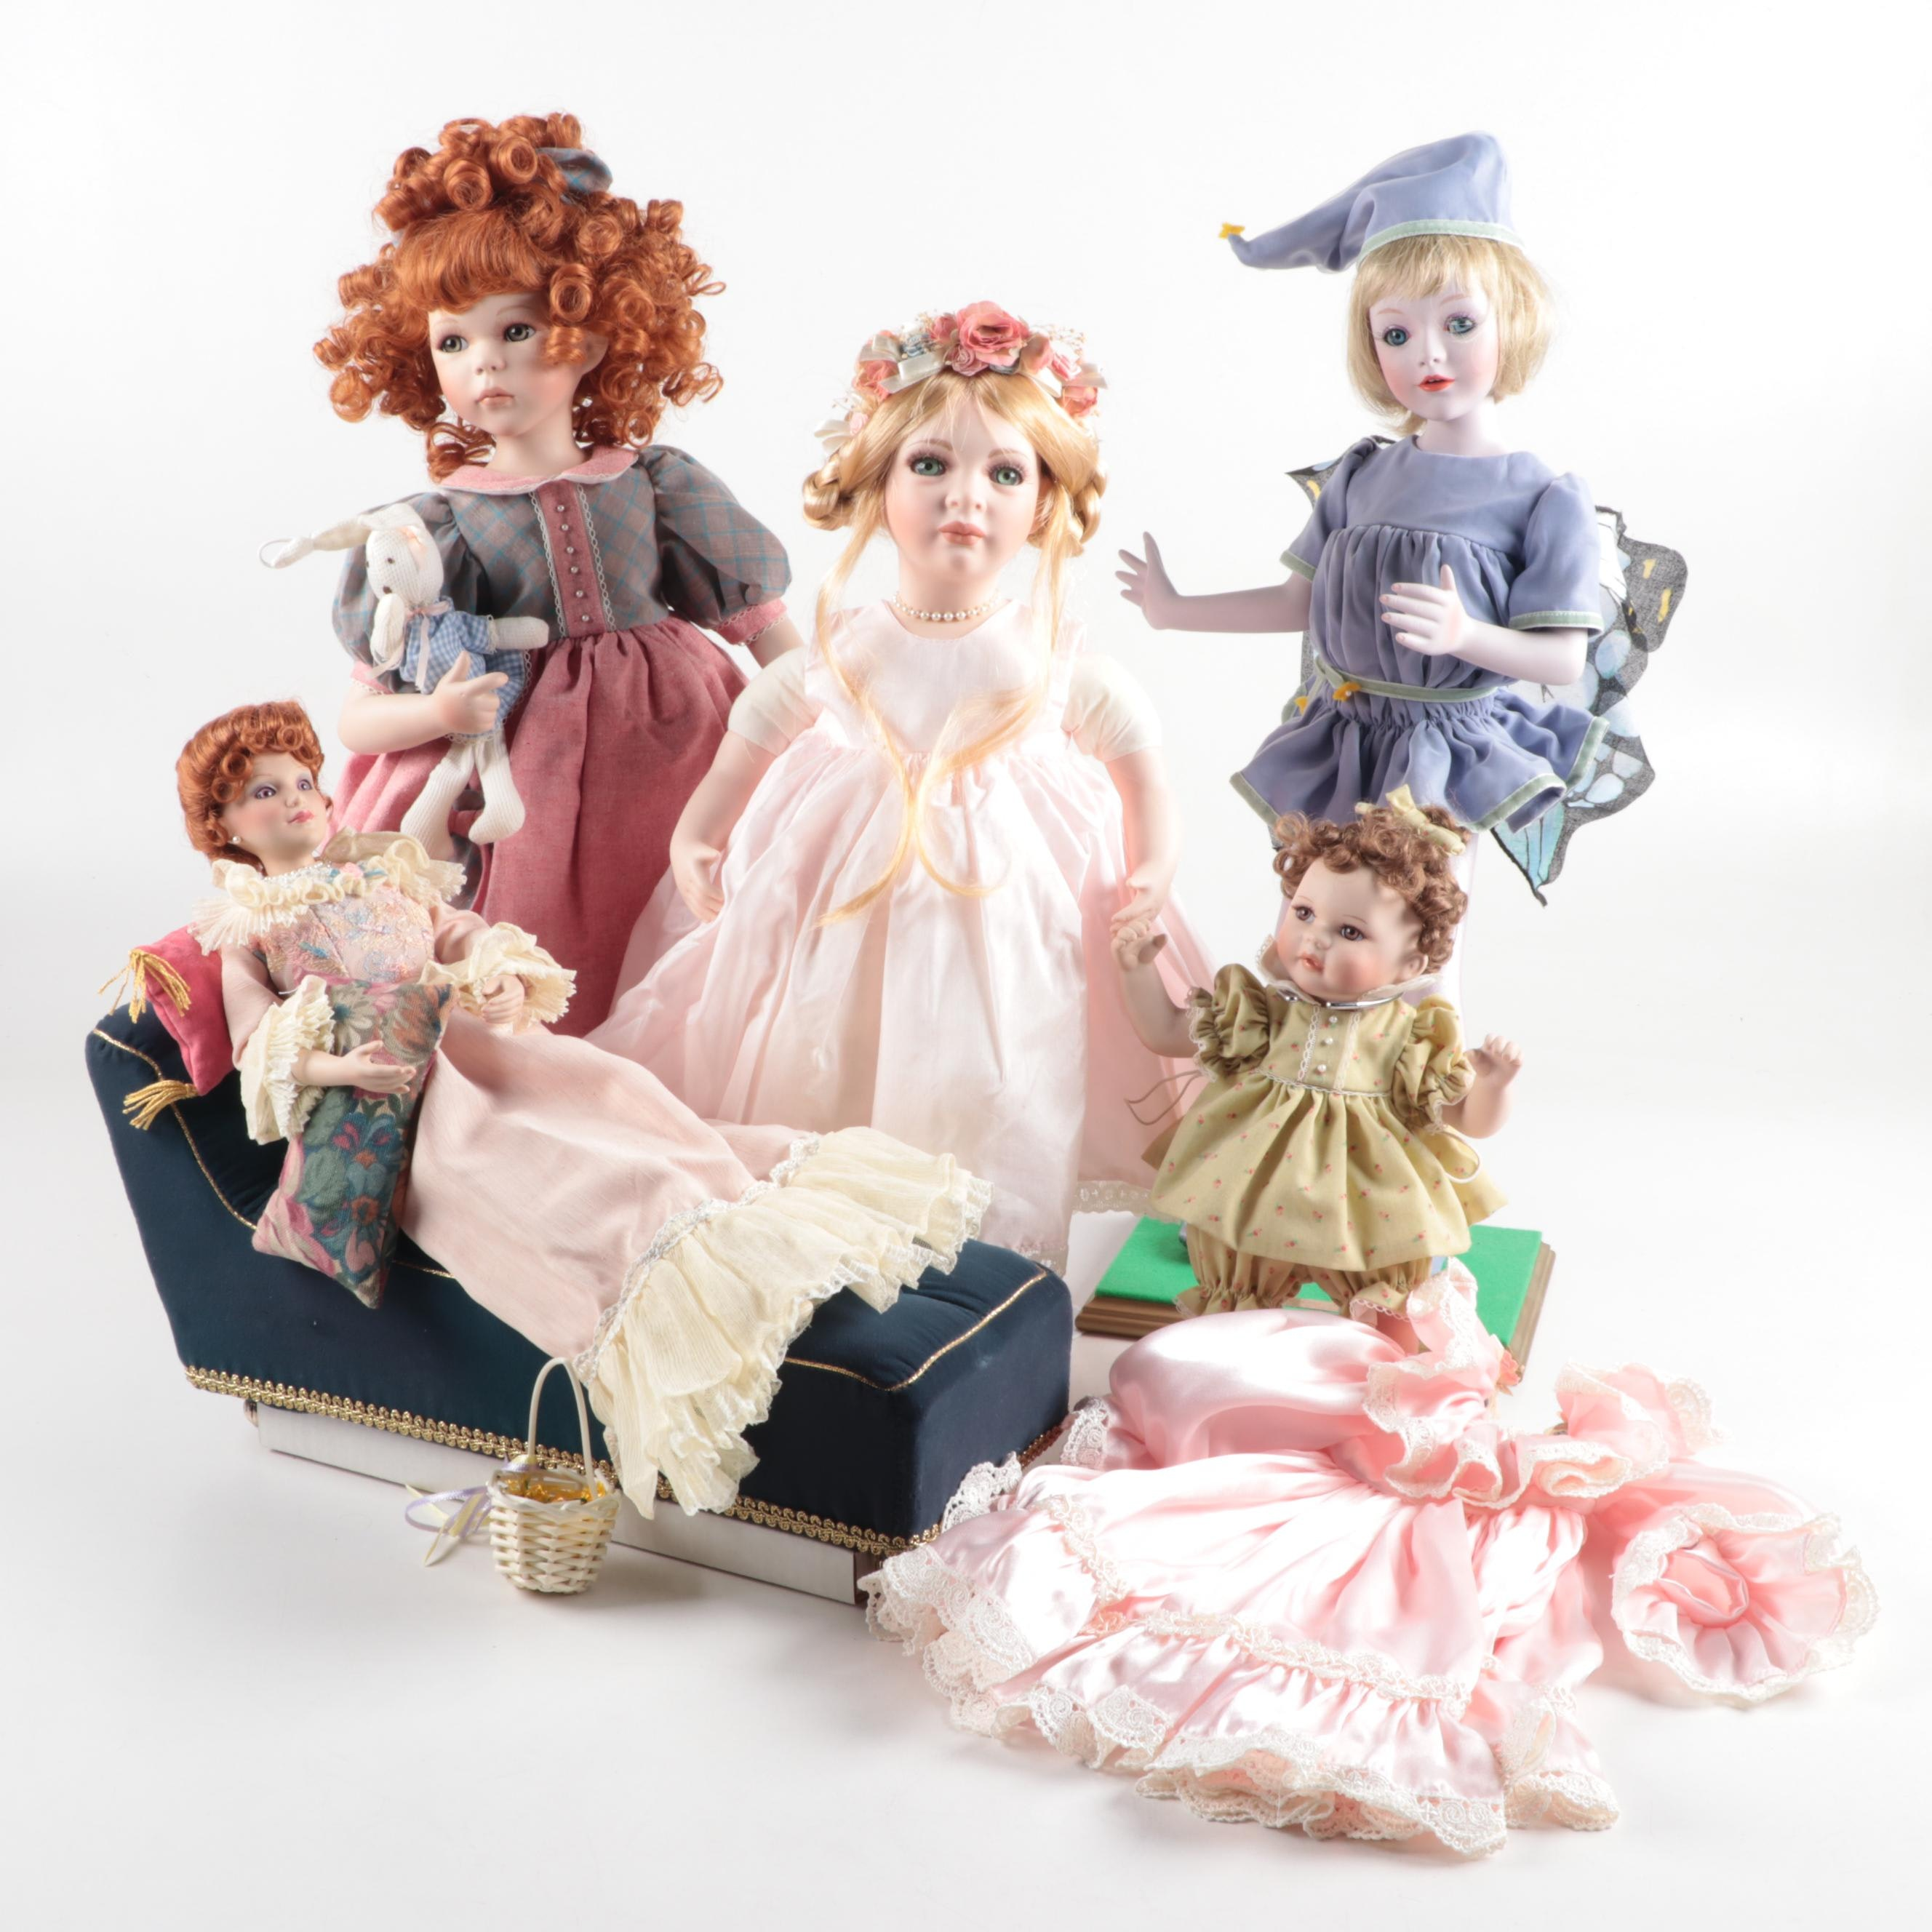 Porcelain Dolls by Seymour Mann, Judy Belle, and More